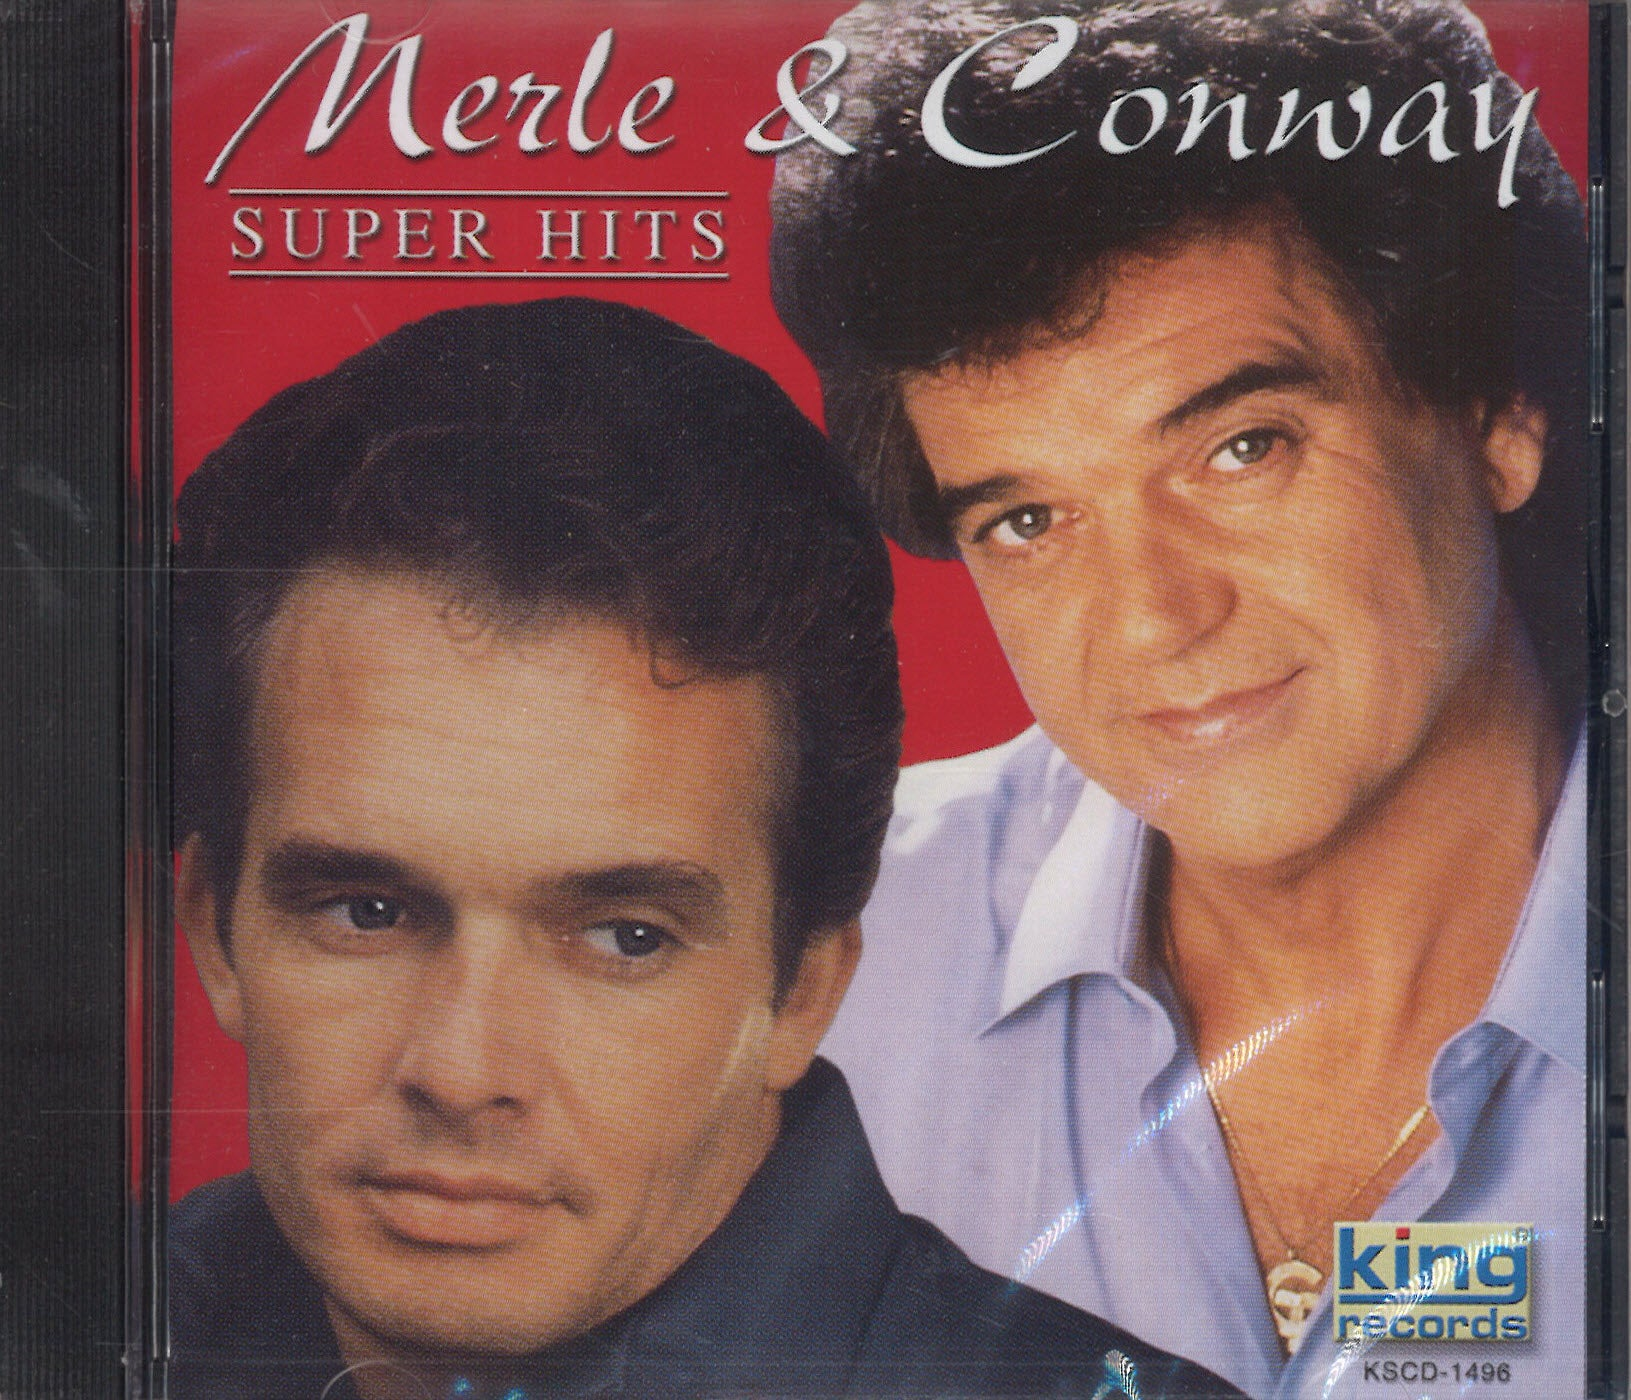 Merle & Conway Super Hits